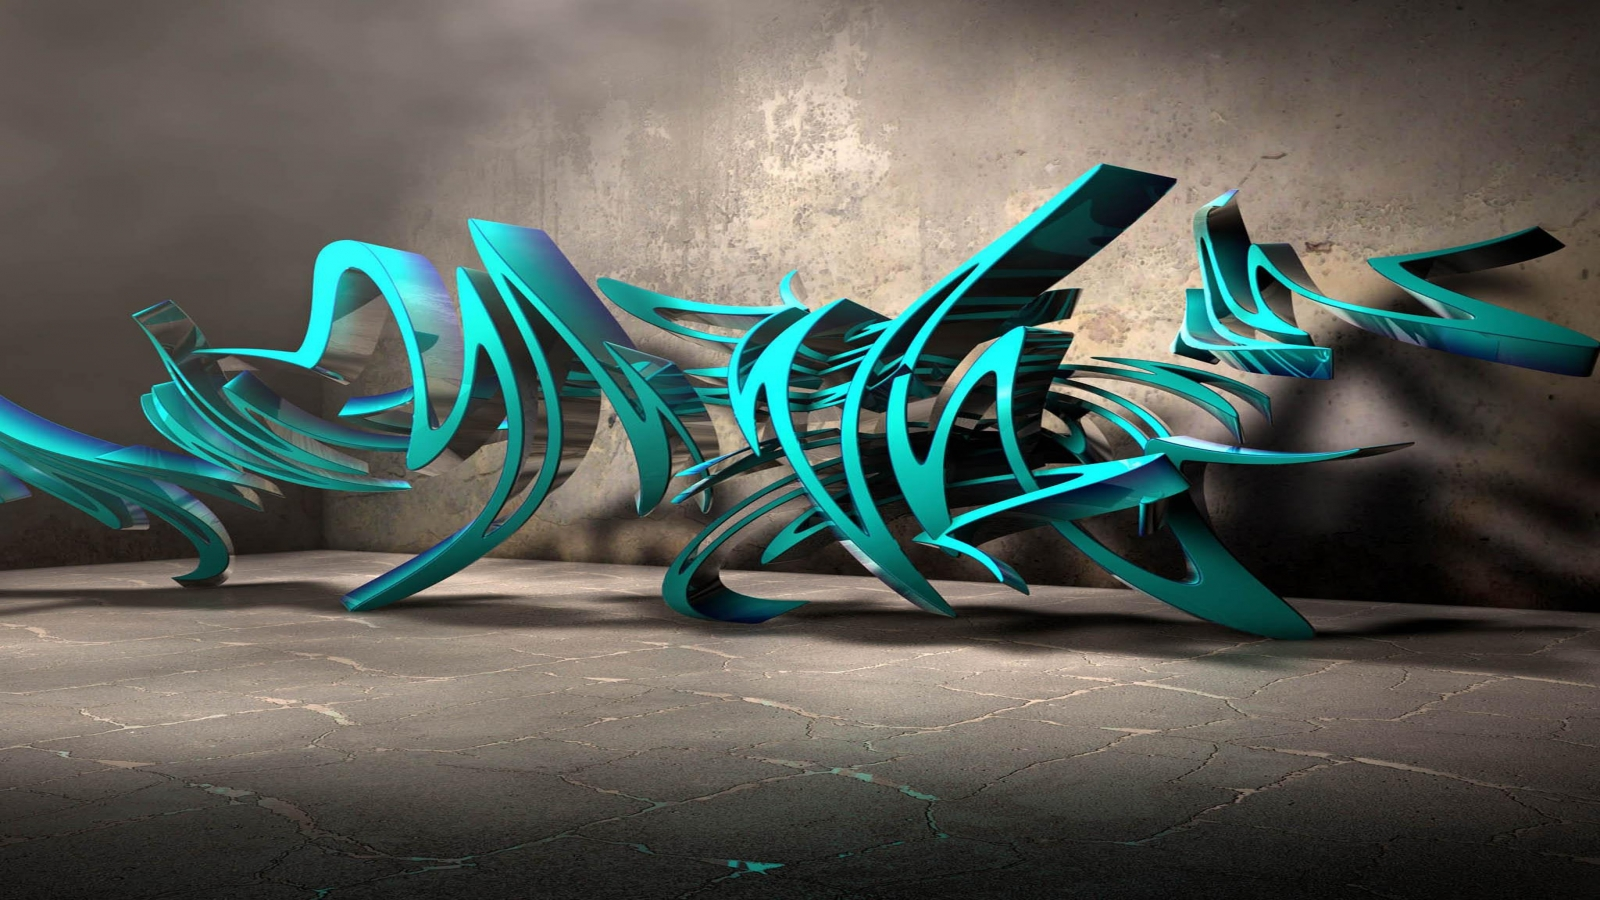 Hd Graffiti Wallpapers Free Download For Iphone s b